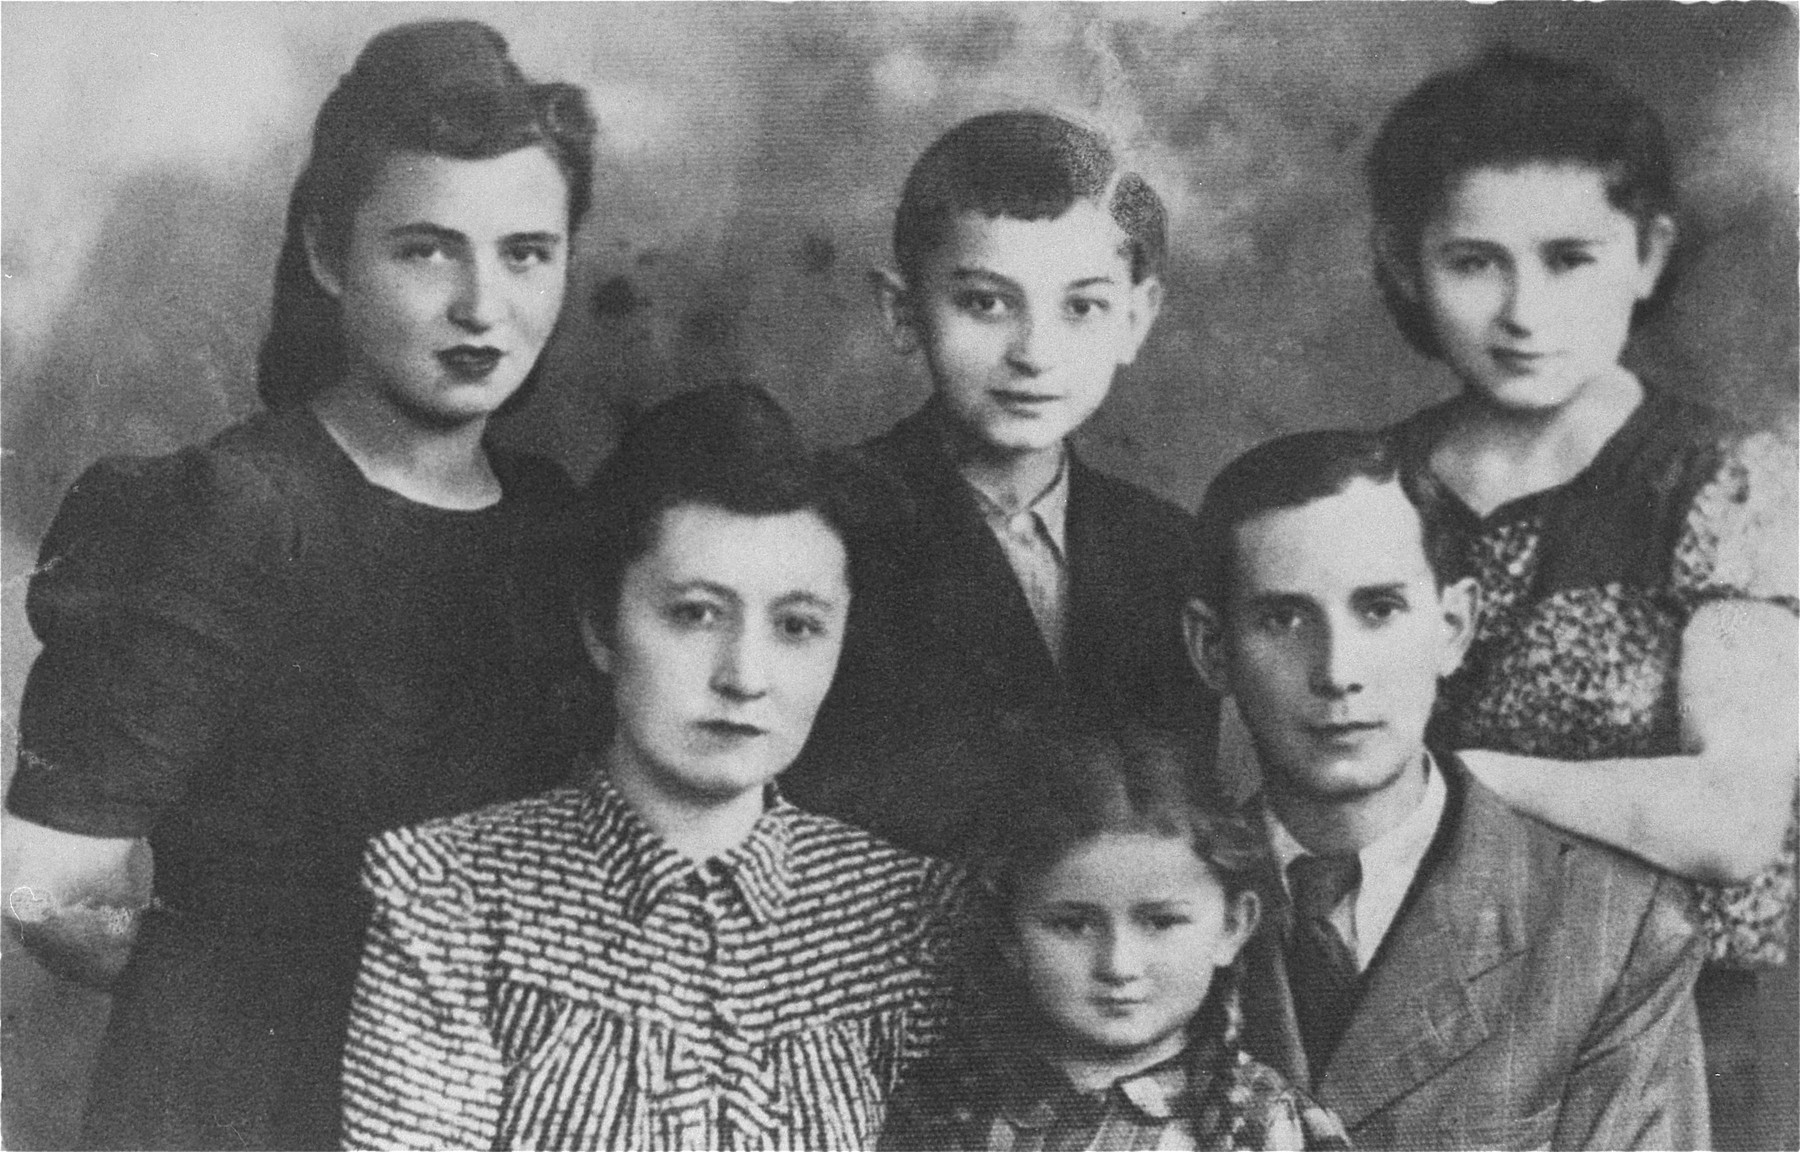 Portrait of the Majerowicz family in the Warsaw ghetto.    Back row, from left to right: Pincia Majerowicz, Chaim (age 10), Cesia (age 12).  Front row, left to right: Pesia-Pola, Lunia (age 5 and daughter of Pesia and Oskar), Oskar (Pesia's husband).